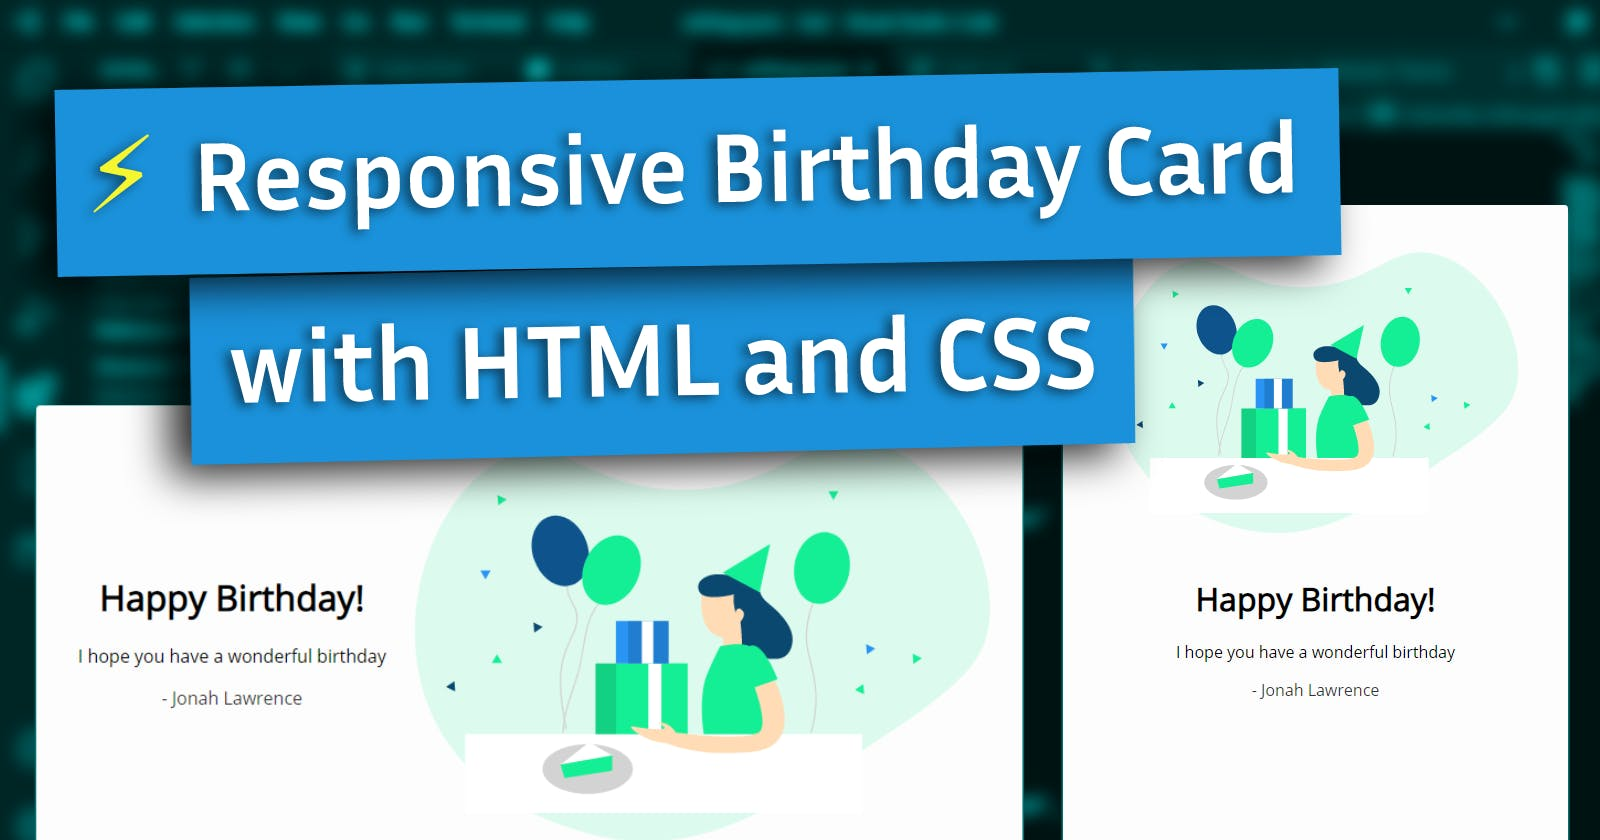 Making a Responsive (Birthday) Card with HTML and CSS